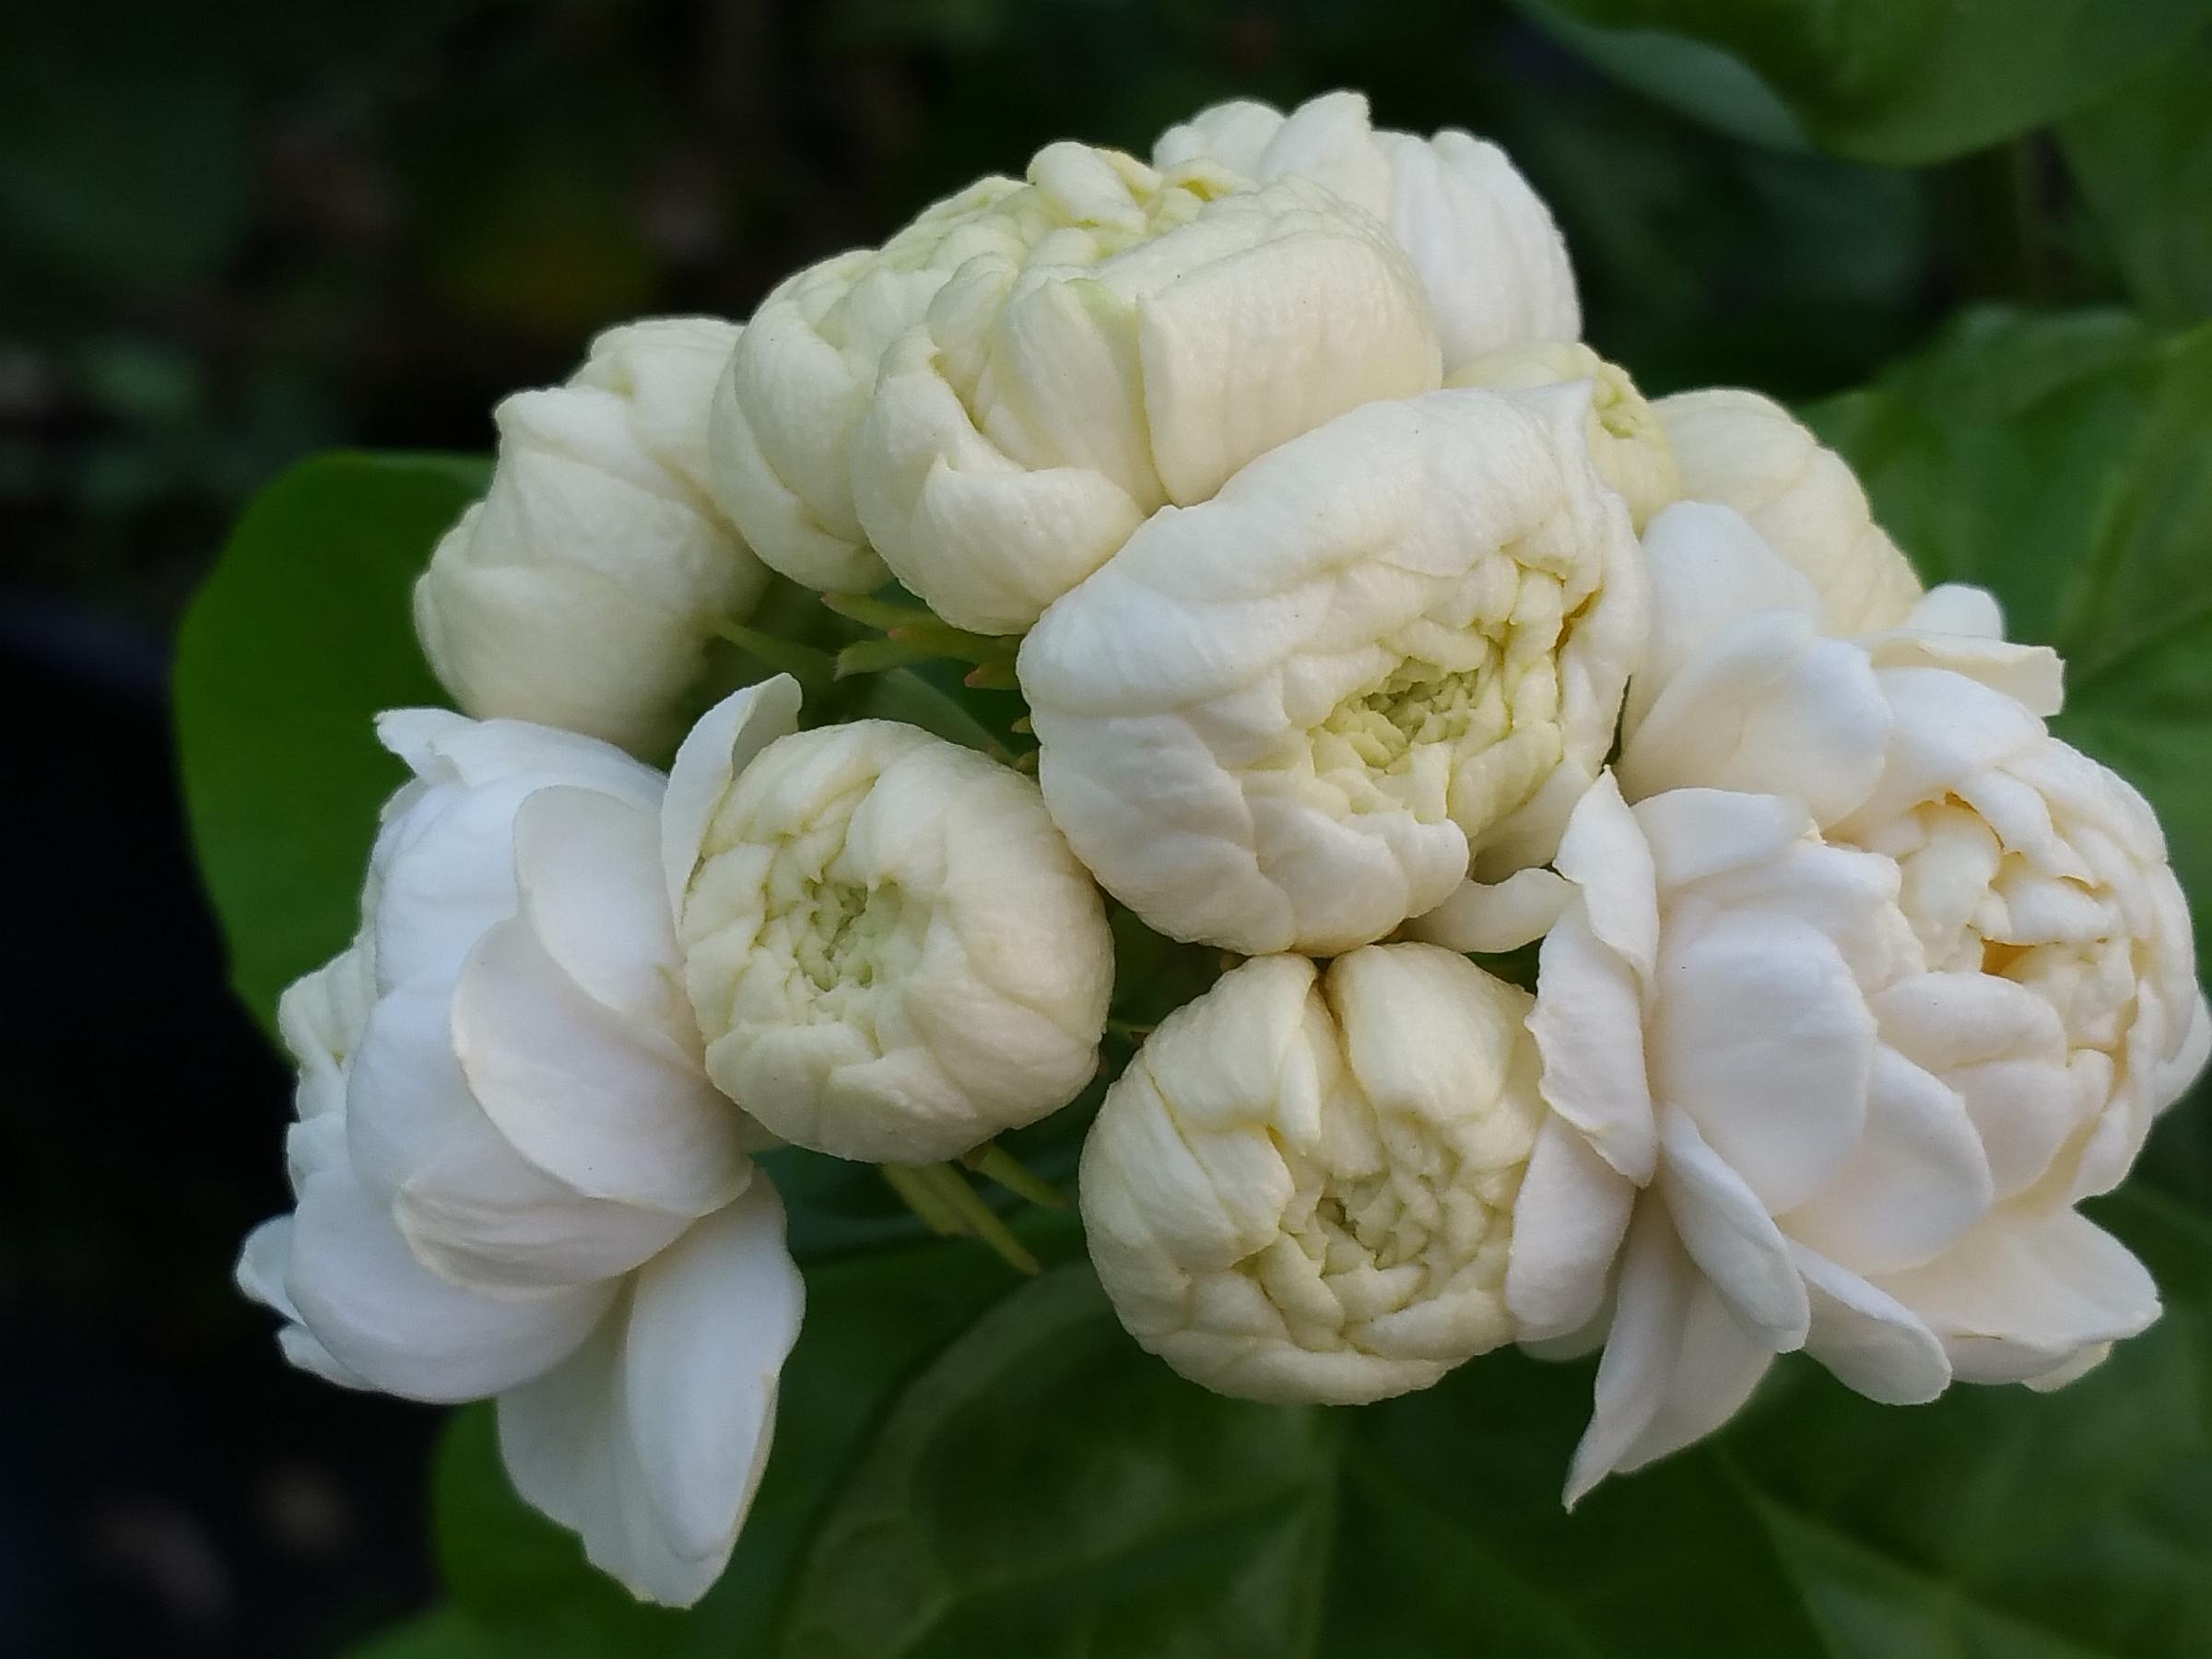 Duke of tuscany arabian sambac tea jasmine live tropical plant duke of tuscany arabian sambac tea jasmine live tropical plant highly fragrant double white flowers starter mightylinksfo